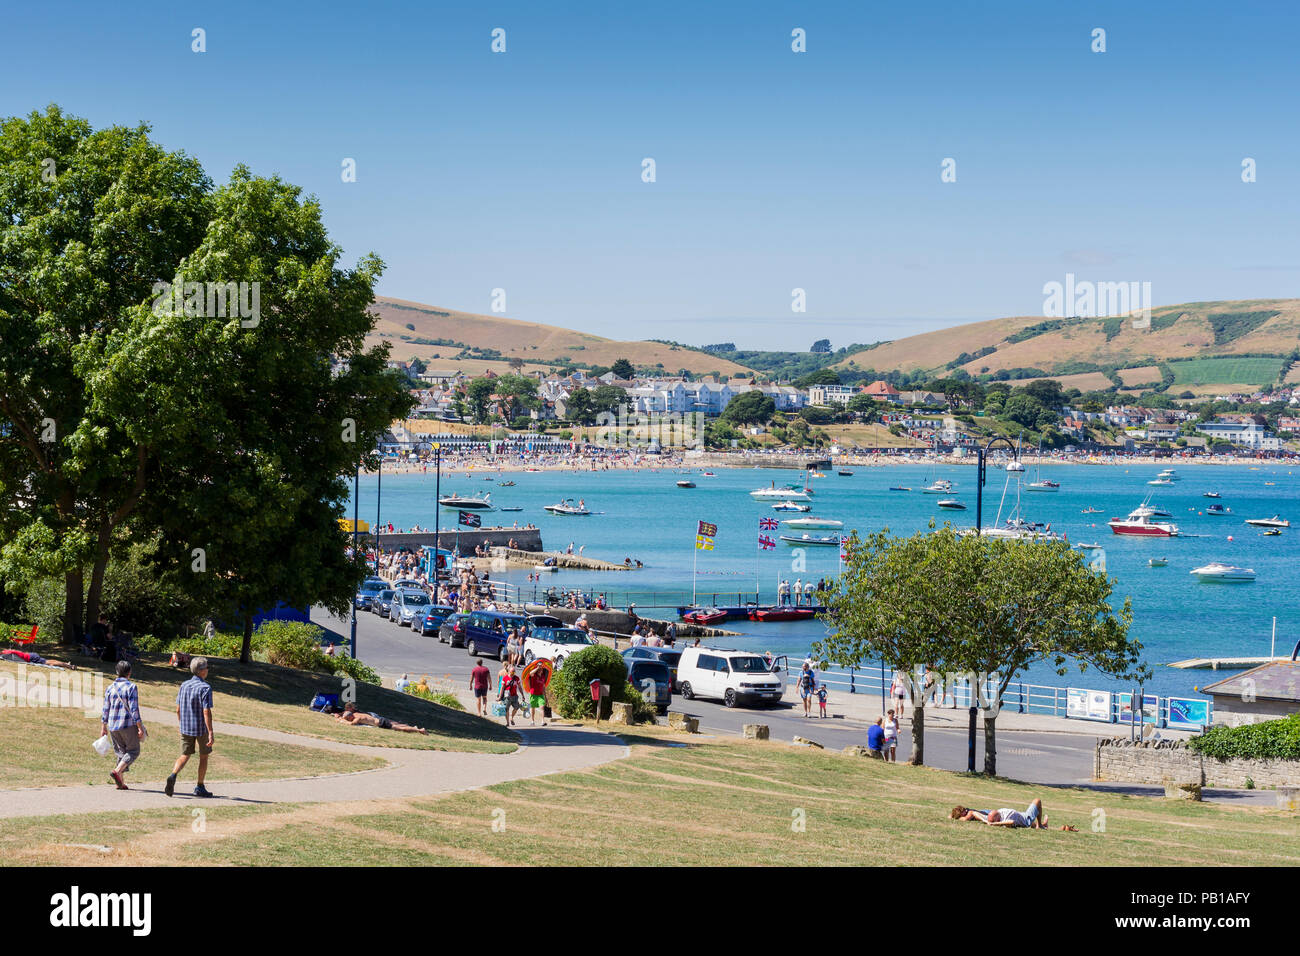 View looking down onto Swanage Bay and promenade on a busy Sunday afternoon in the summer season, Dorset, United Kingdom - Stock Image